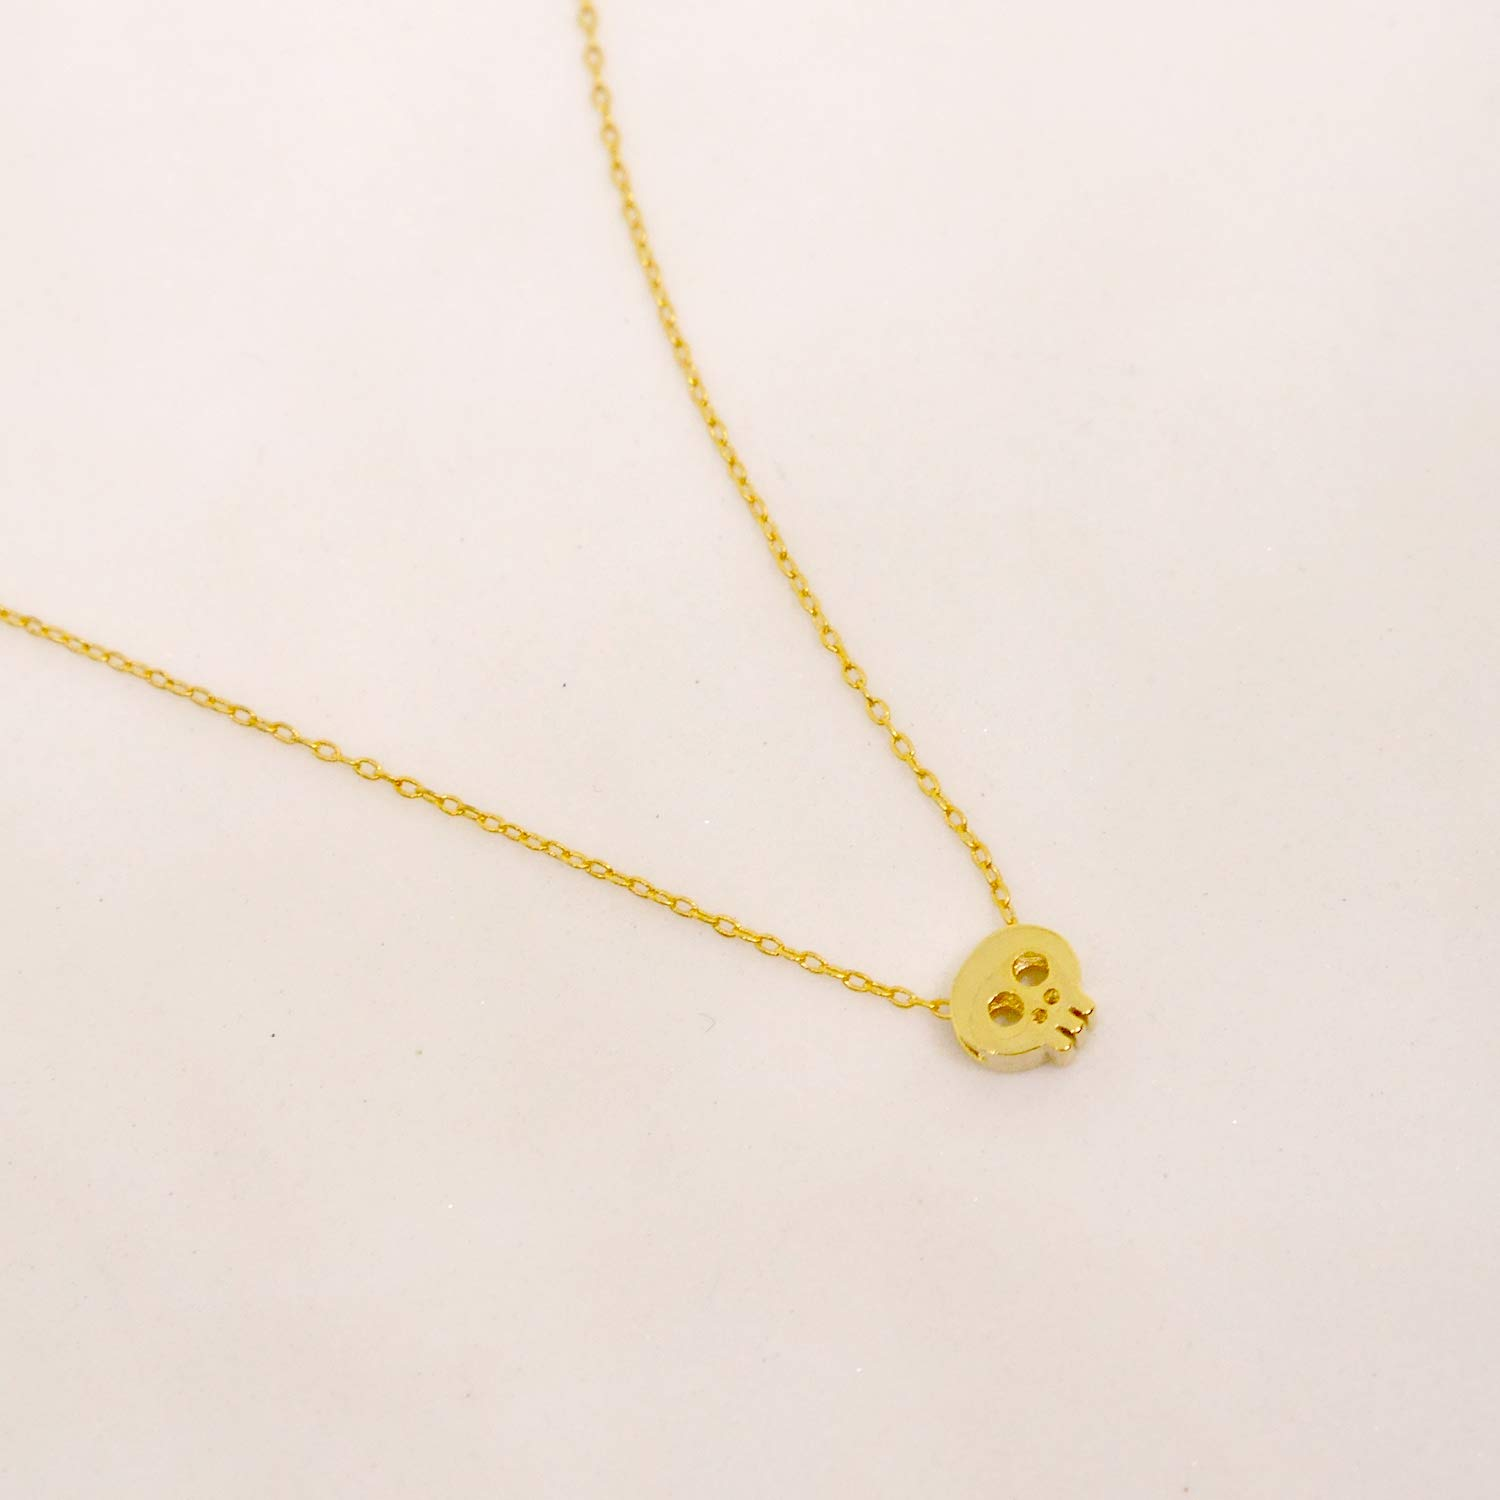 17 Length Be Badass Everyday Gold Plated Necklace